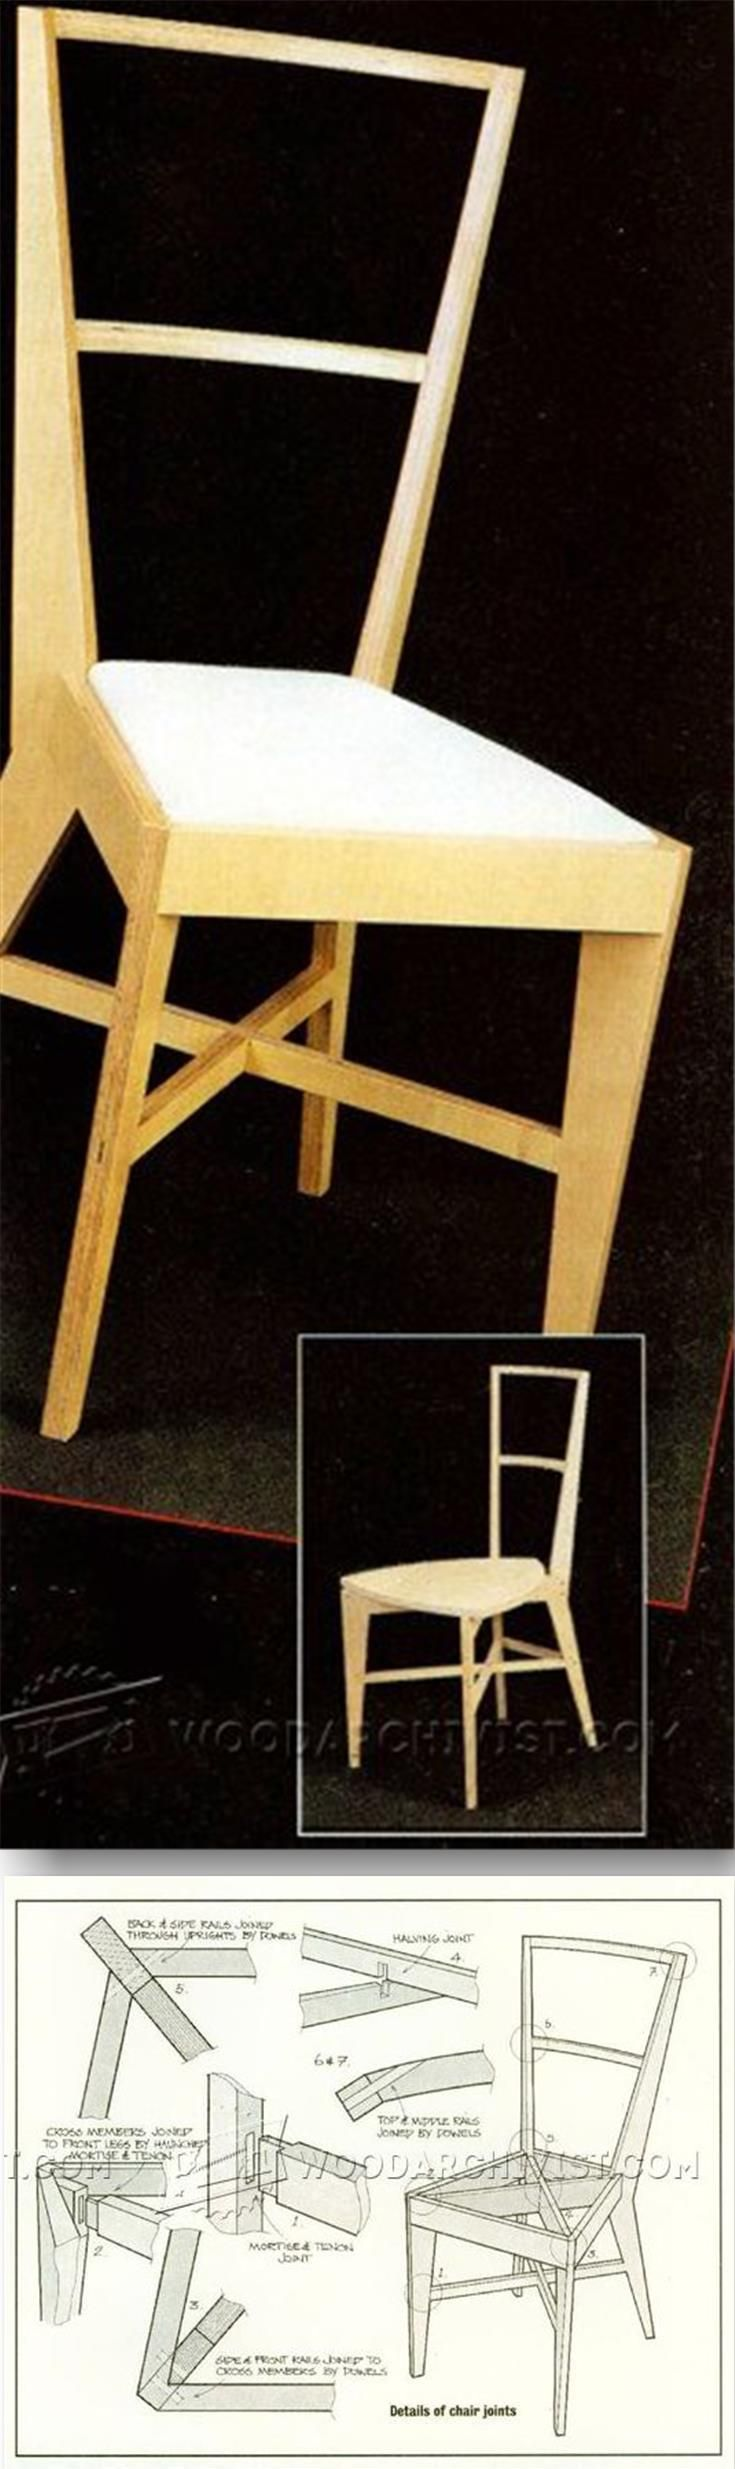 Plywood Chair Plans - Furniture Plans and Projects | WoodArchivist.com